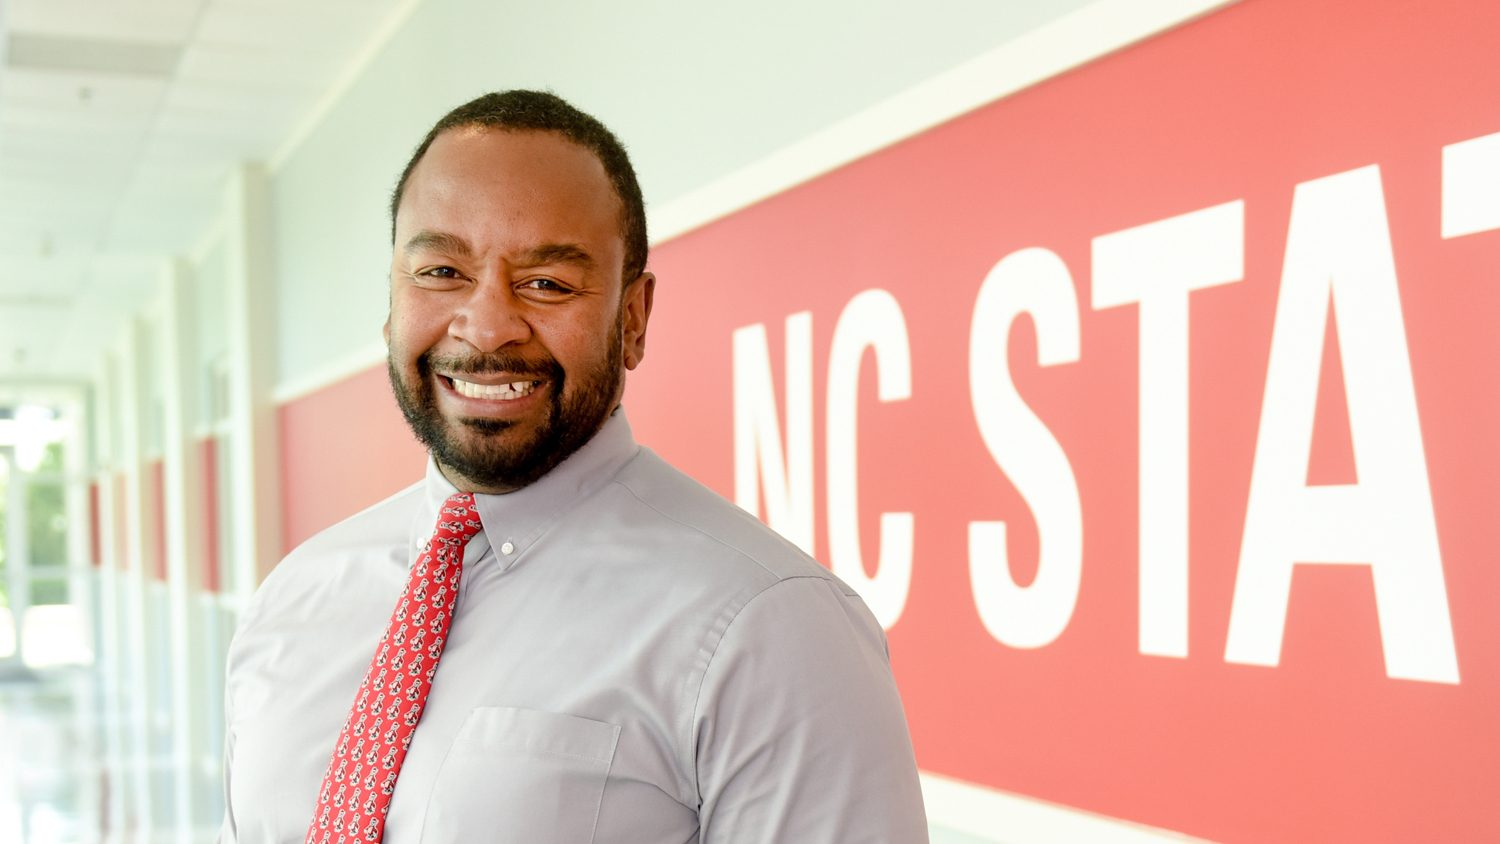 North Carolina Cooperative Extension Service Associate Director Travis Burke poses for a headshot in front of the NC State University logo.